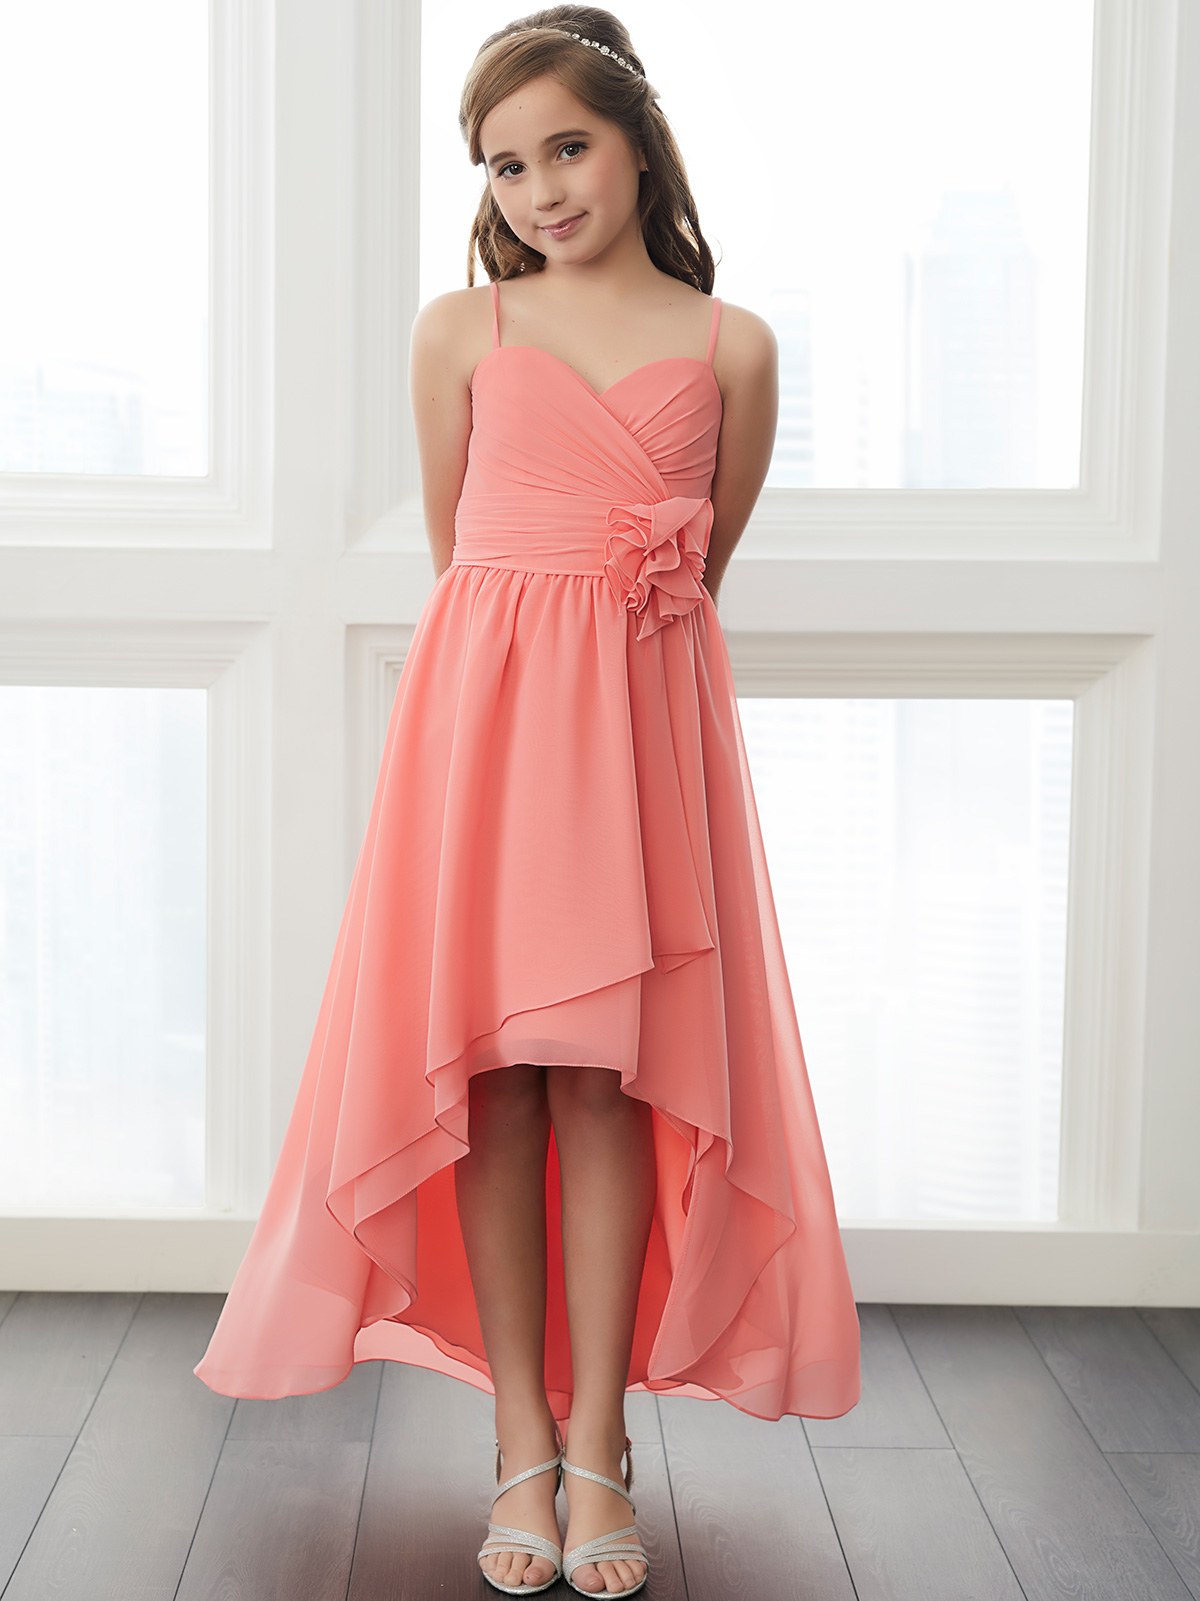 Christina wu junior 32648 sweetheart high low bridesmaid dress christina wu junior 32648 sweetheart bridesmaid dress ombrellifo Gallery